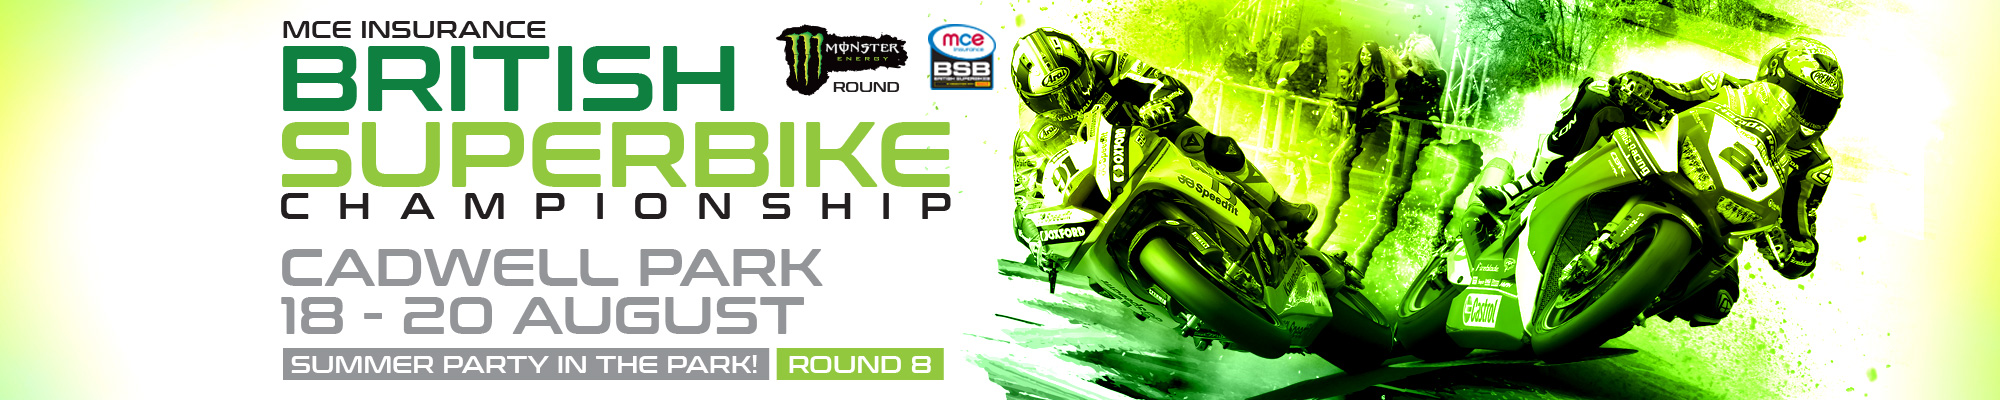 MCE Insurance British Superbike Championship